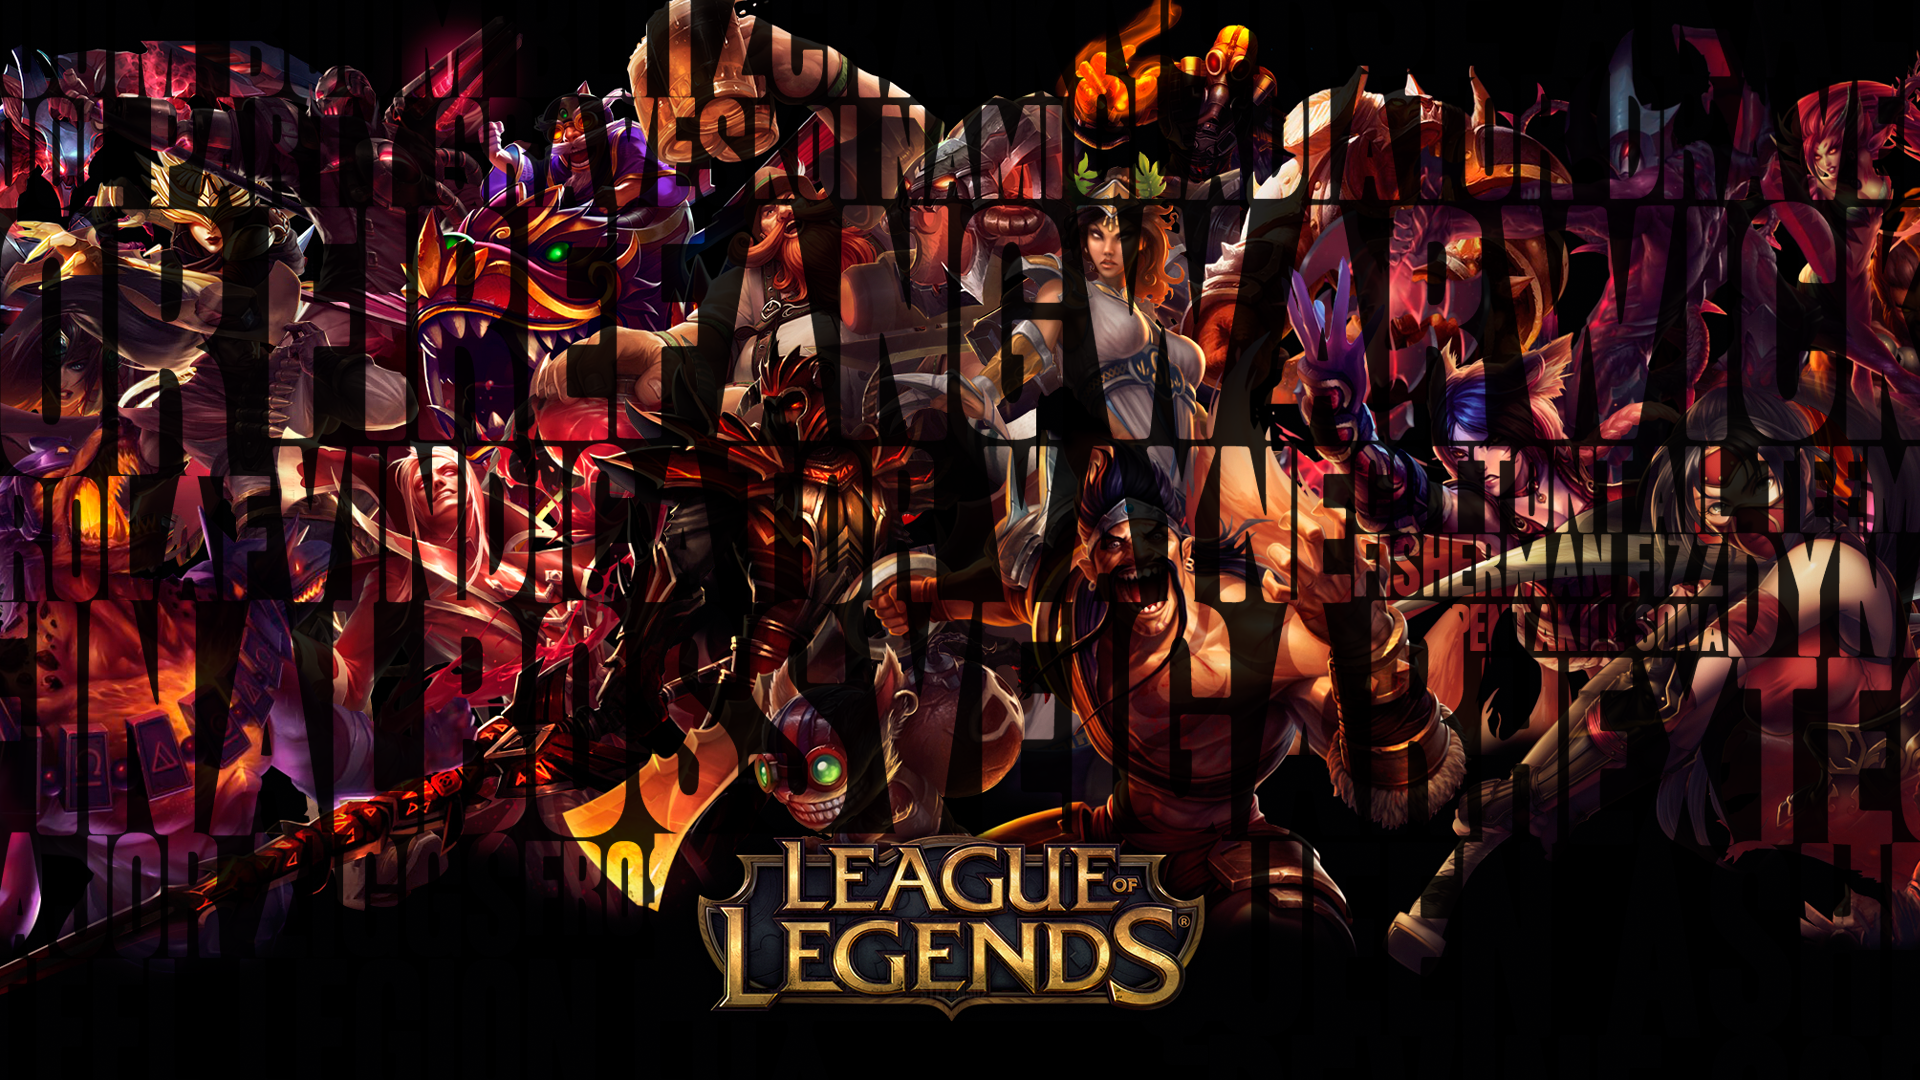 Download League of Legends Online Game HD Wallpaper Search more high 1920x1080